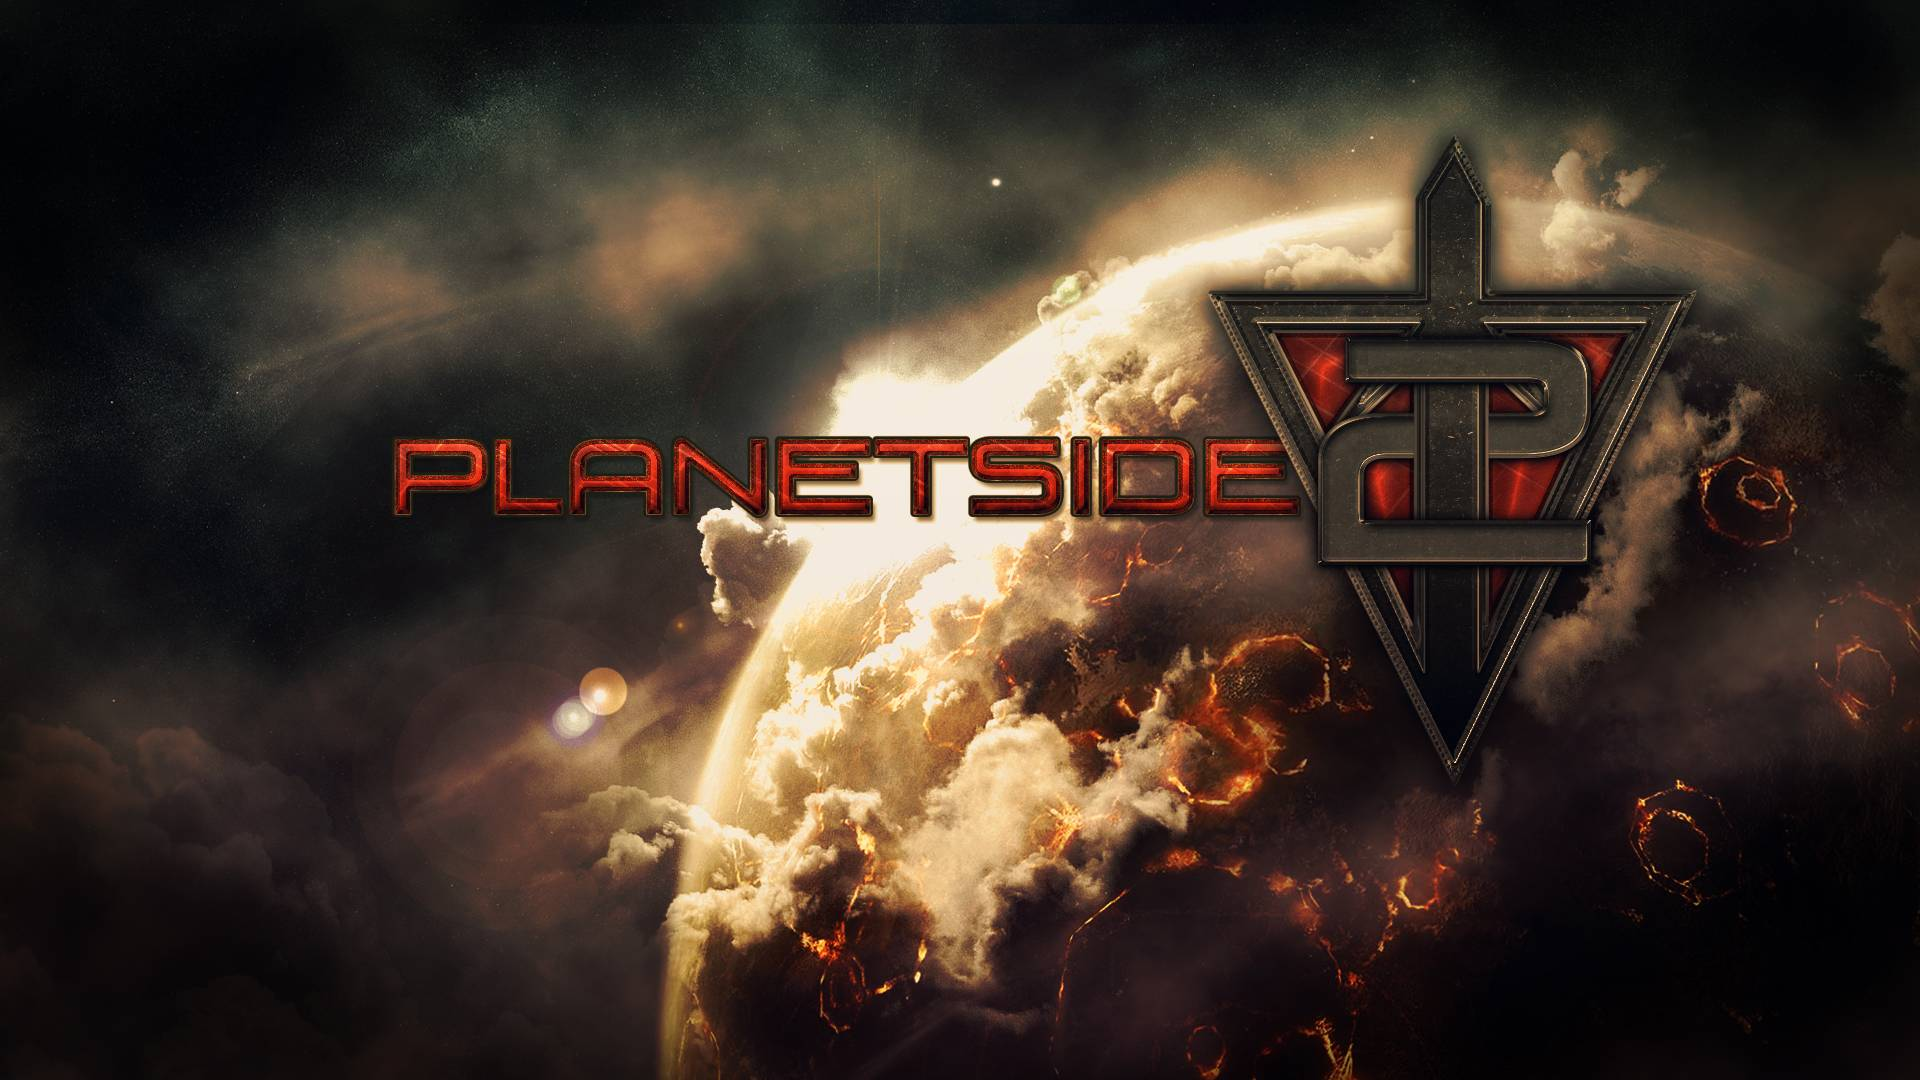 Planetside-2-hd-wallpaper